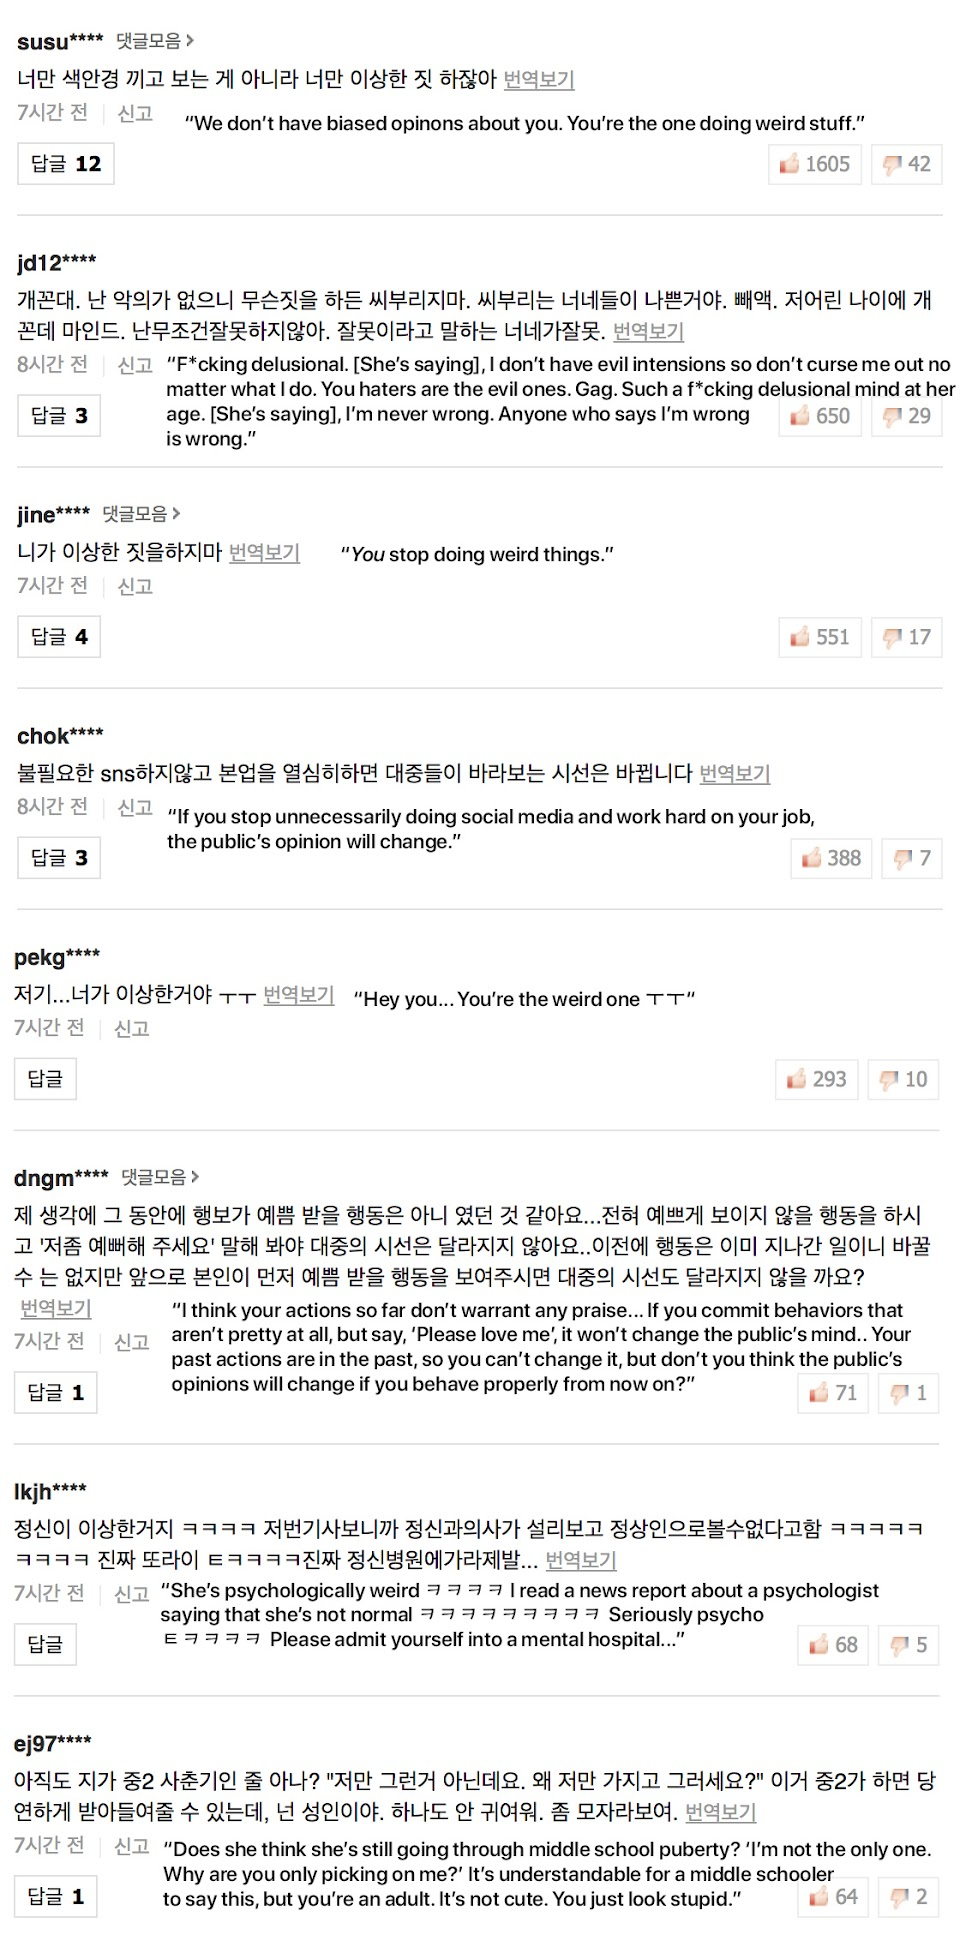 sulli interview netizen response